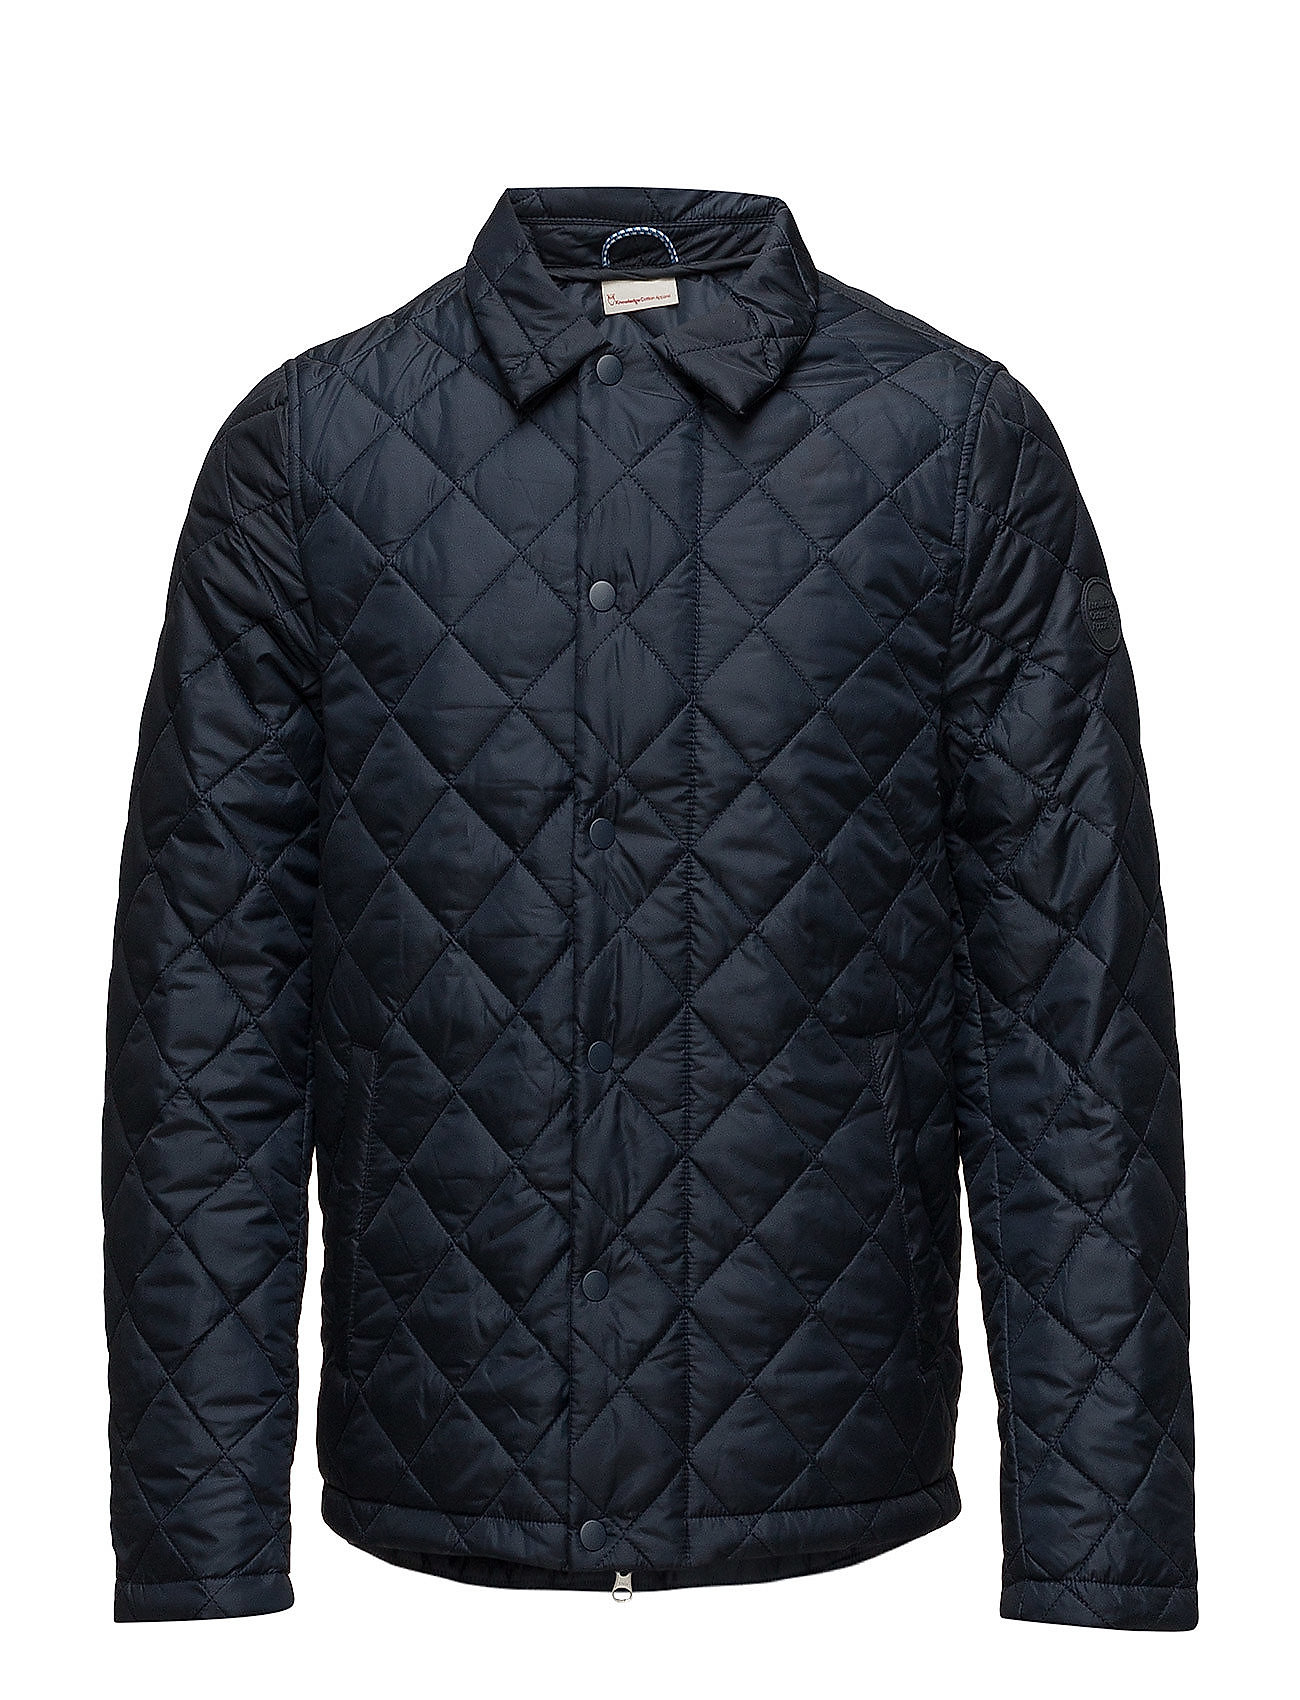 Knowledge Cotton Apparel Quilted jacket - GRS - TOTAL ECLIPSE